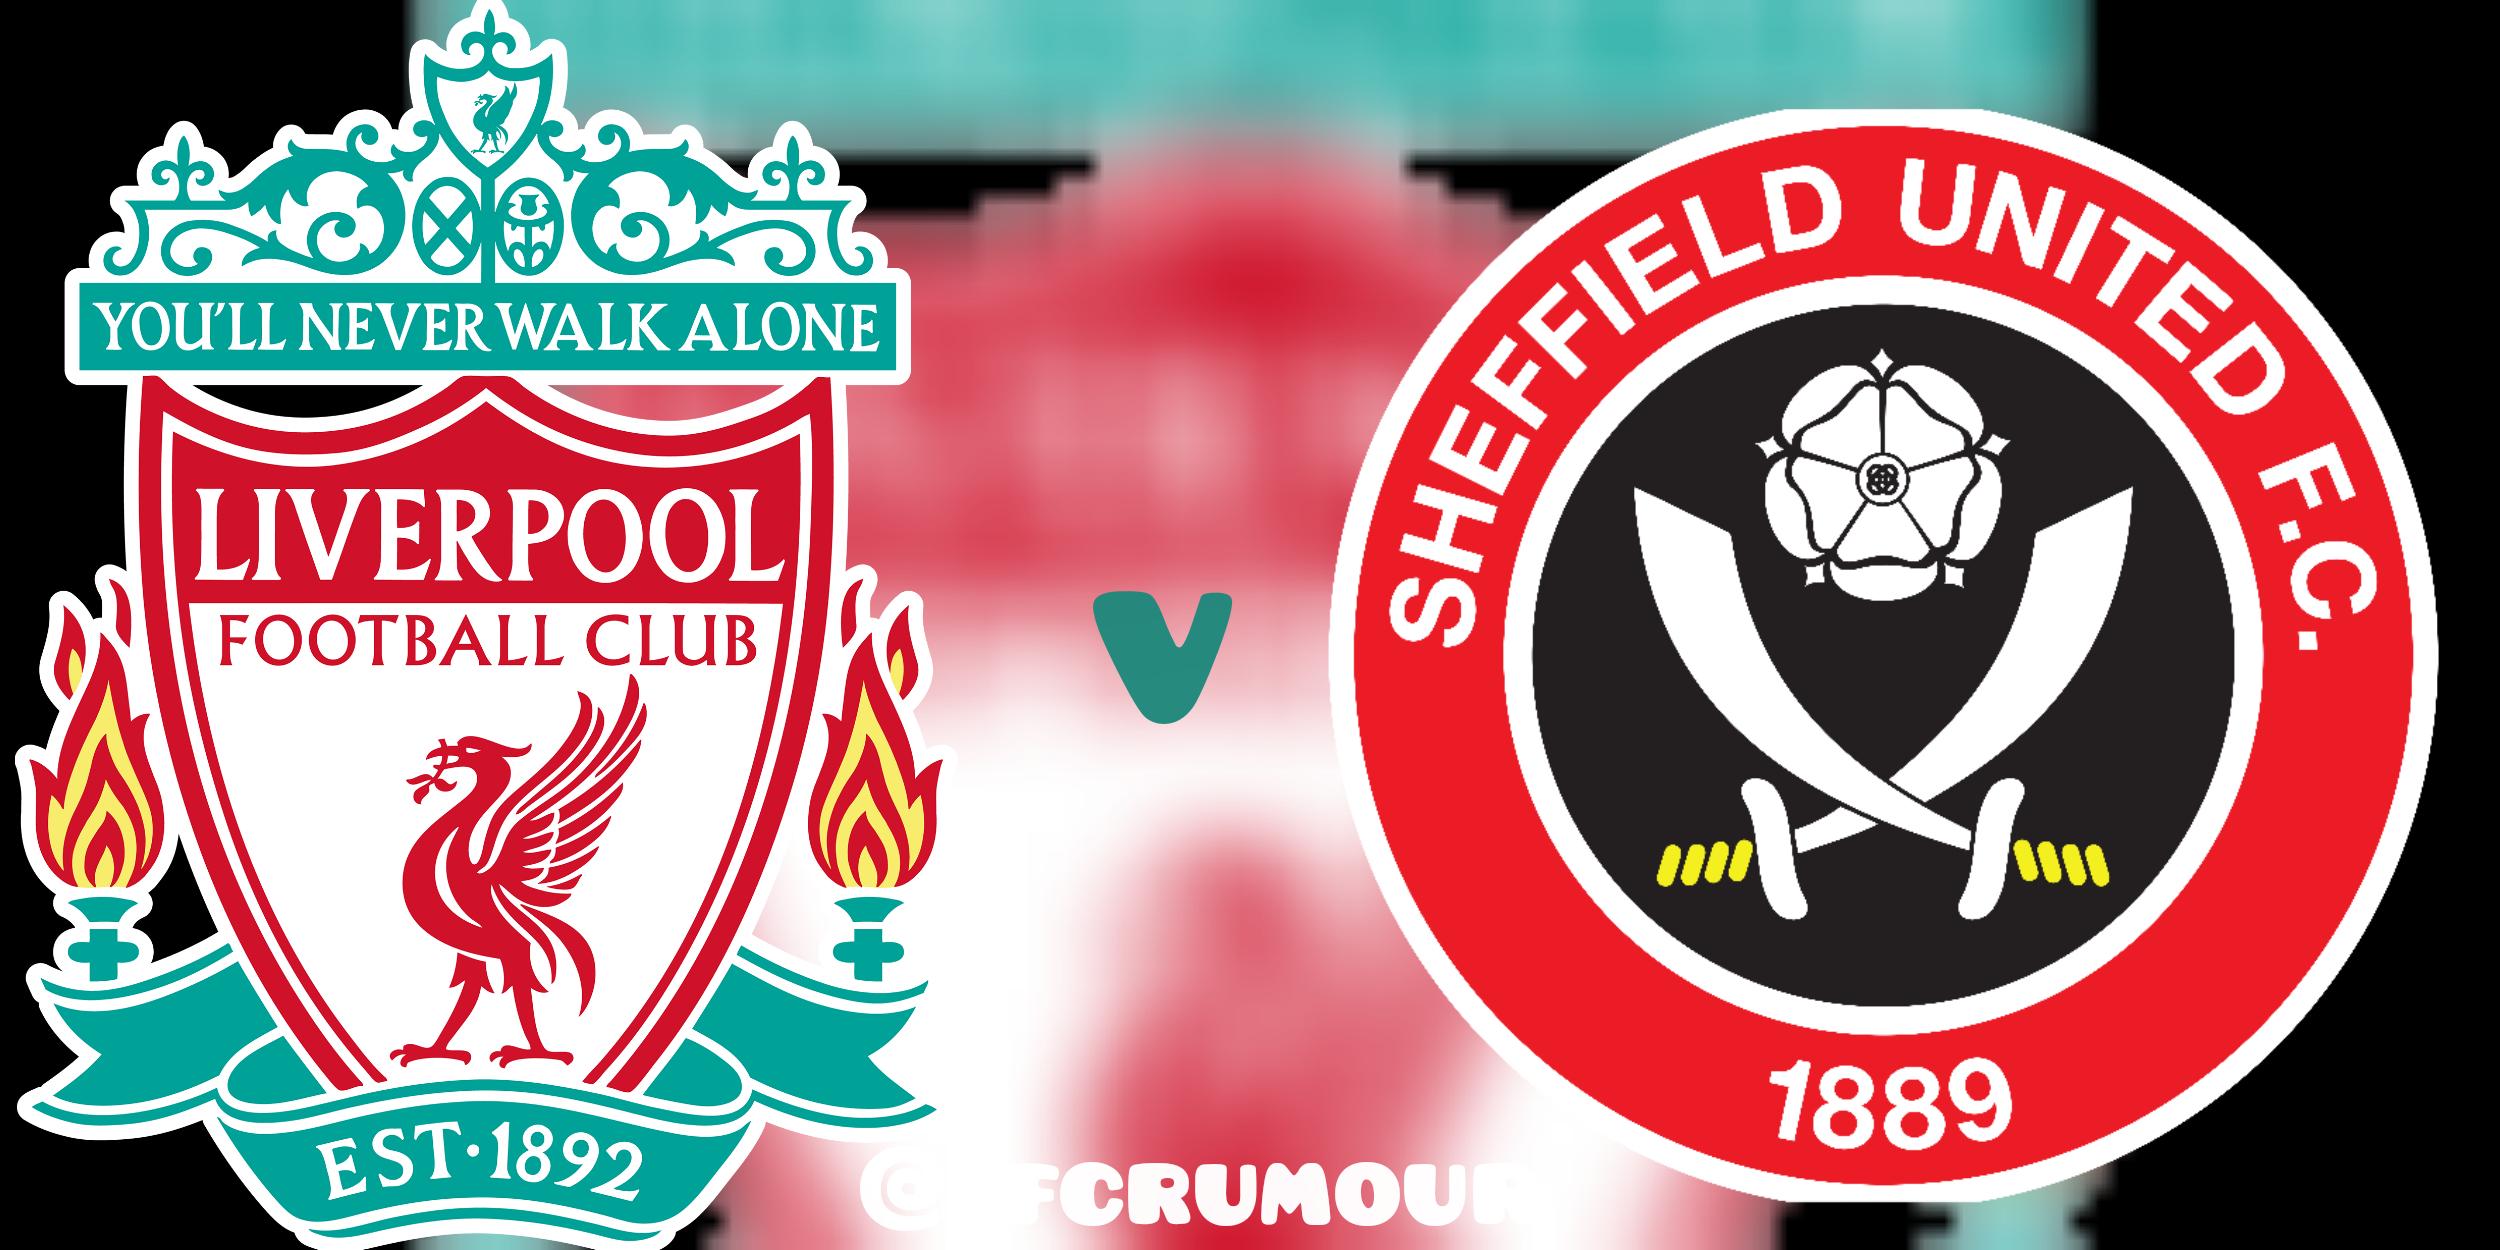 Preview - Liverpool vs Sheffield United on Sky Sports.